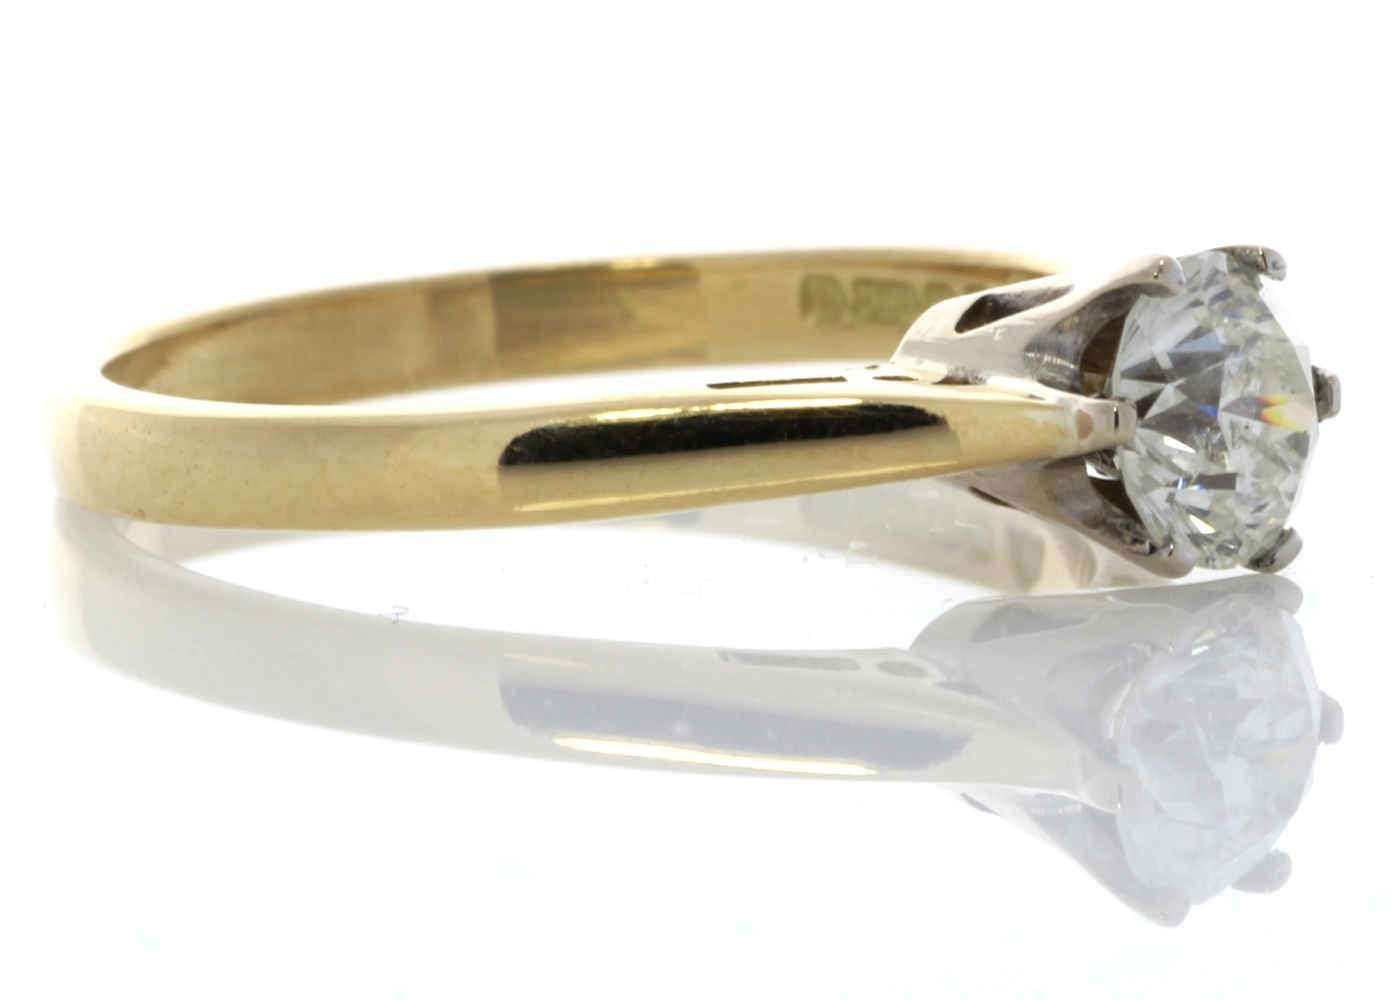 18ct Yellow Gold Diamond Engagement Ring 0.61 Carats - Image 4 of 6